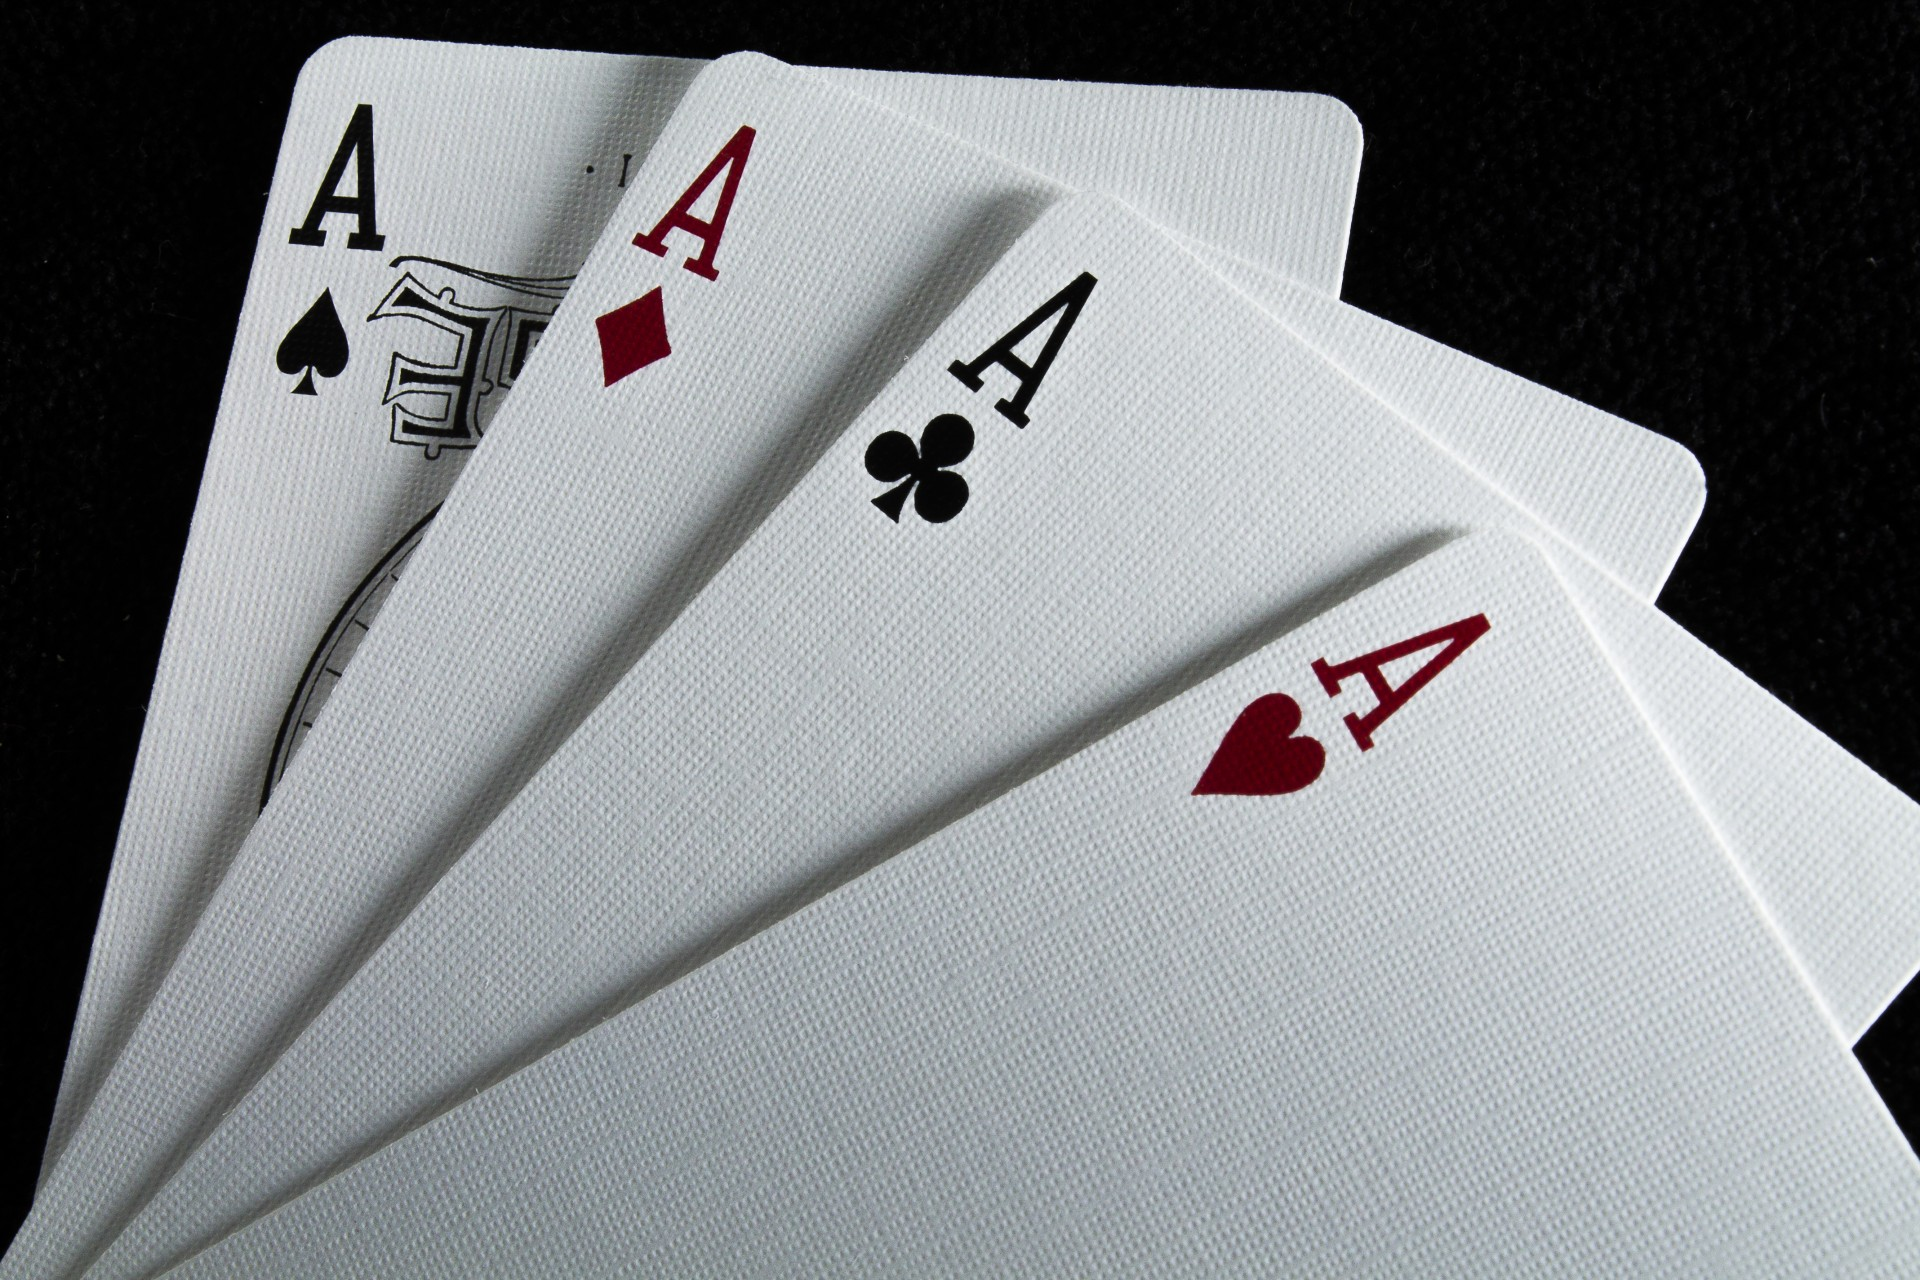 Top 3d Wallpaper Hd Four Aces Of Cards Free Stock Photo Public Domain Pictures